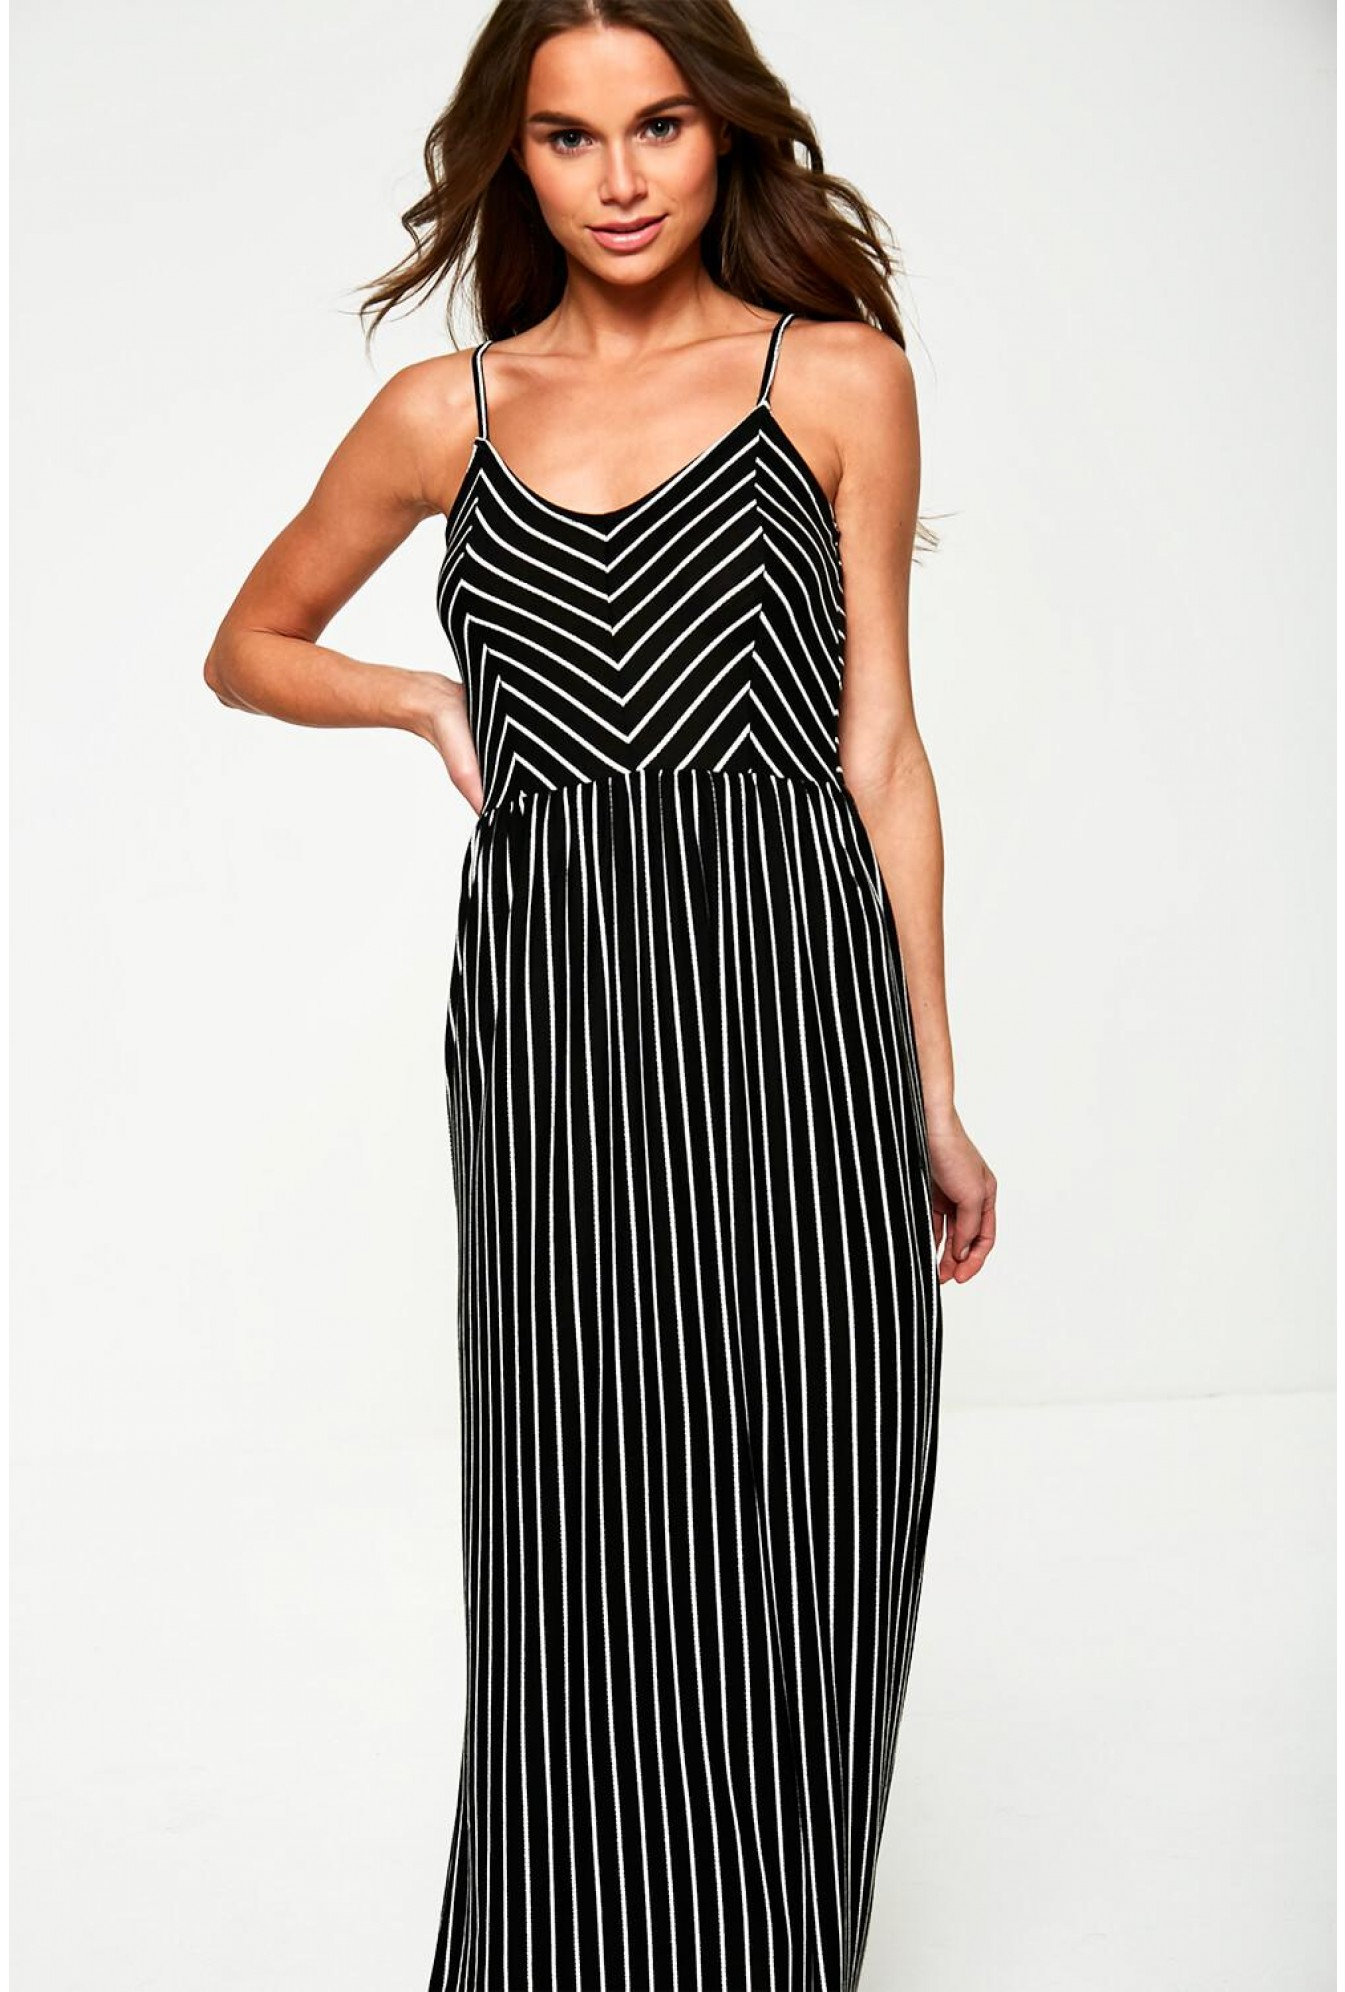 75c5e23cb2601 Pieces Striped Jersey Maxi Dress in Black   iCLOTHING